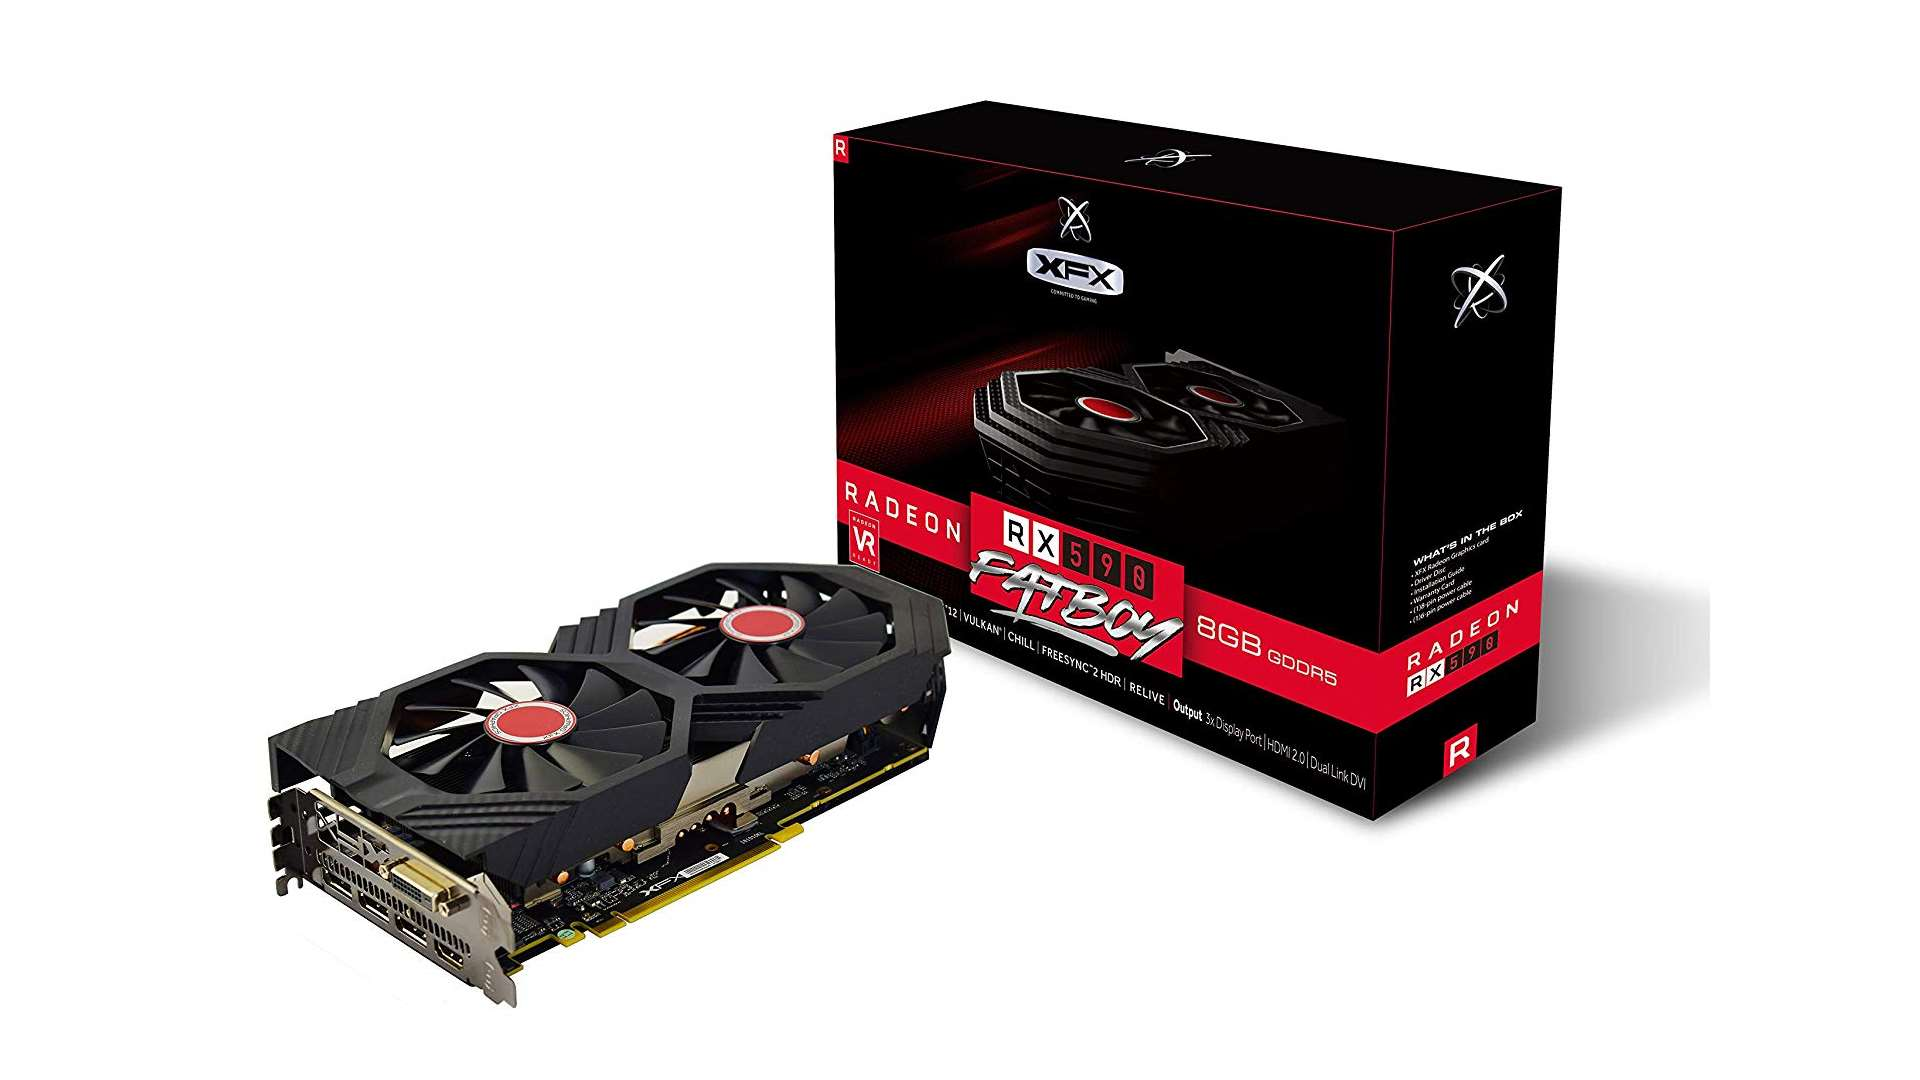 AMD's RX 590 will now work in Linux… but it's 76% slower than an RX